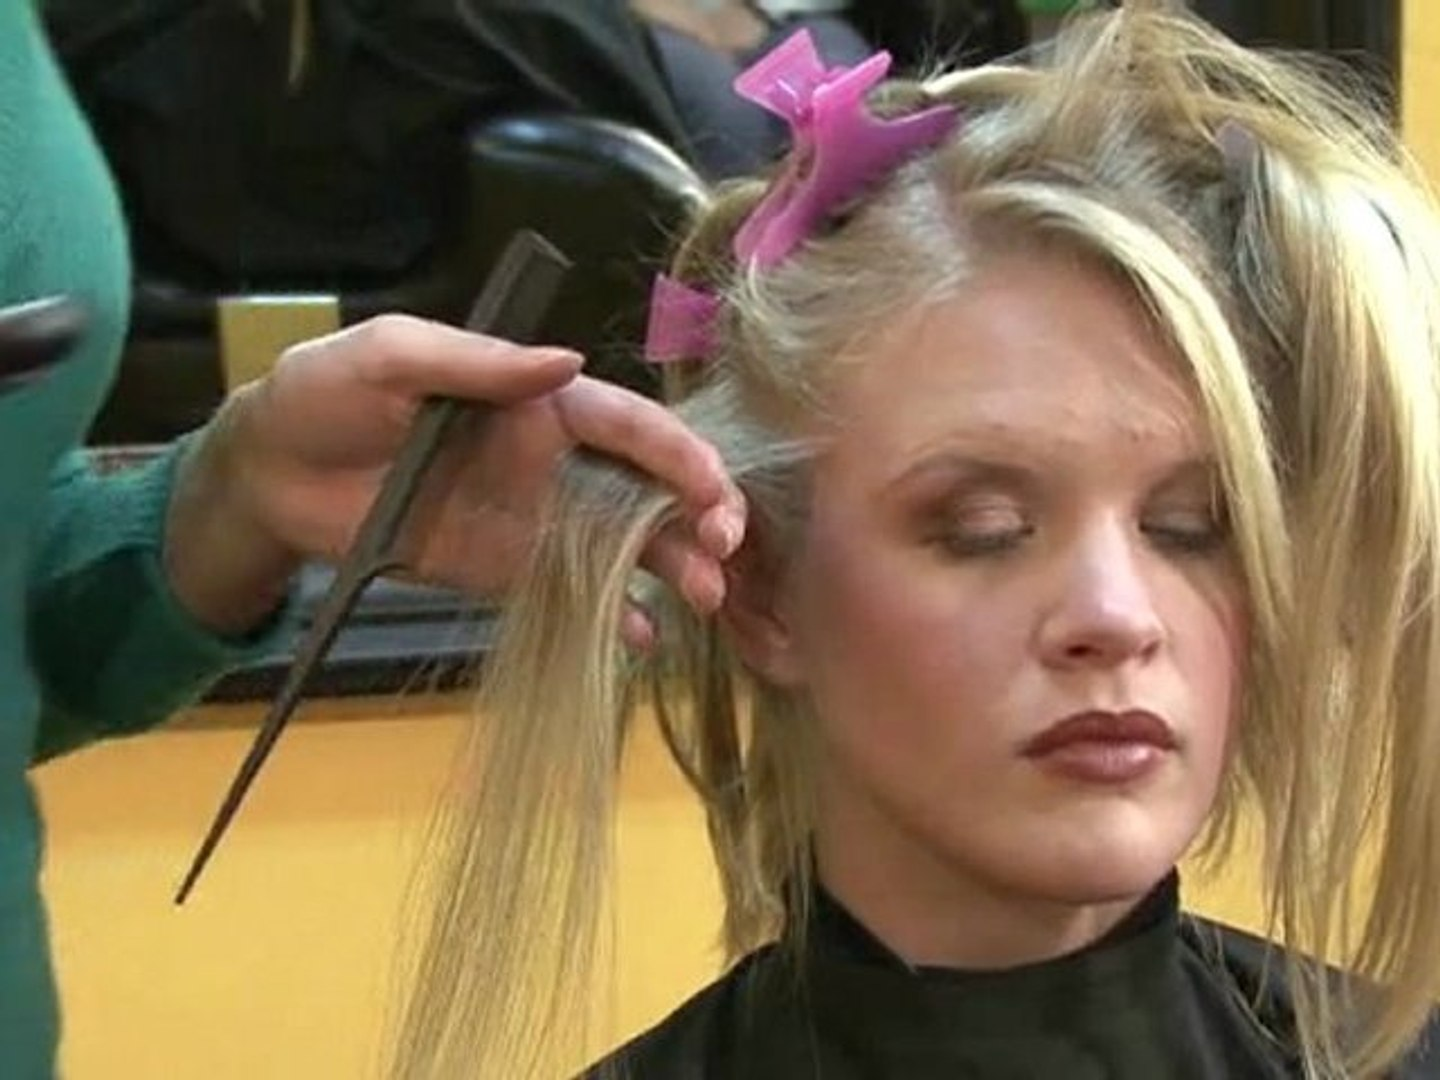 Hair Style Techniques - How to Flat Iron